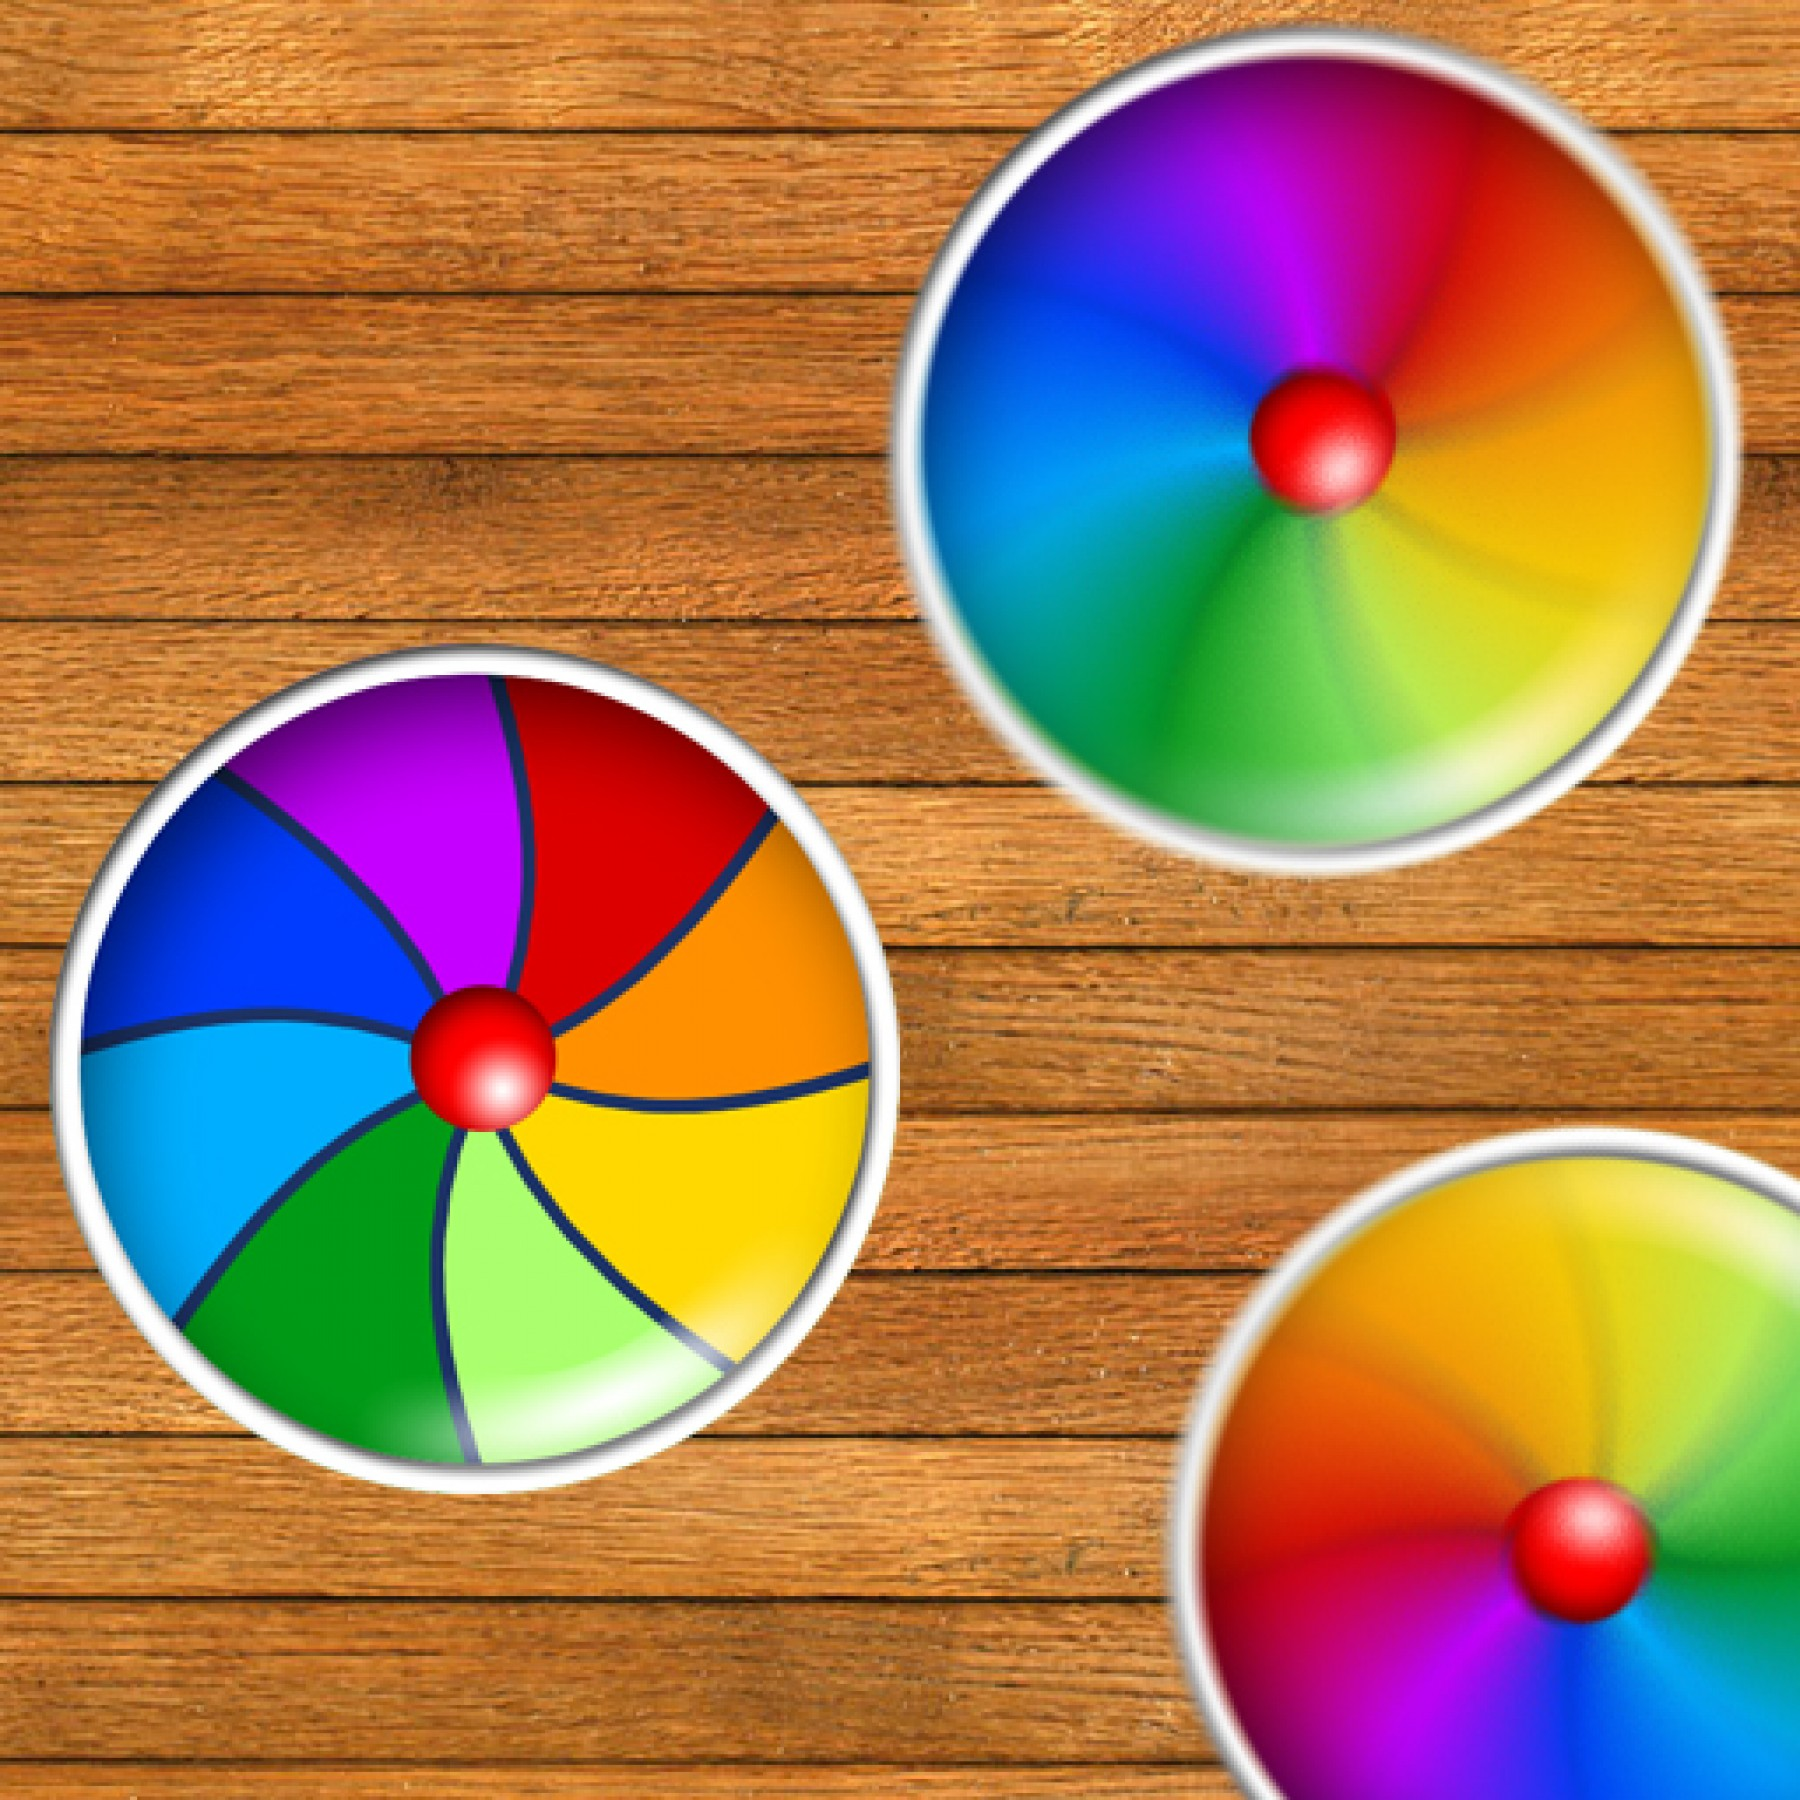 spinning-tops-playtime-kids-adults-education-main-location